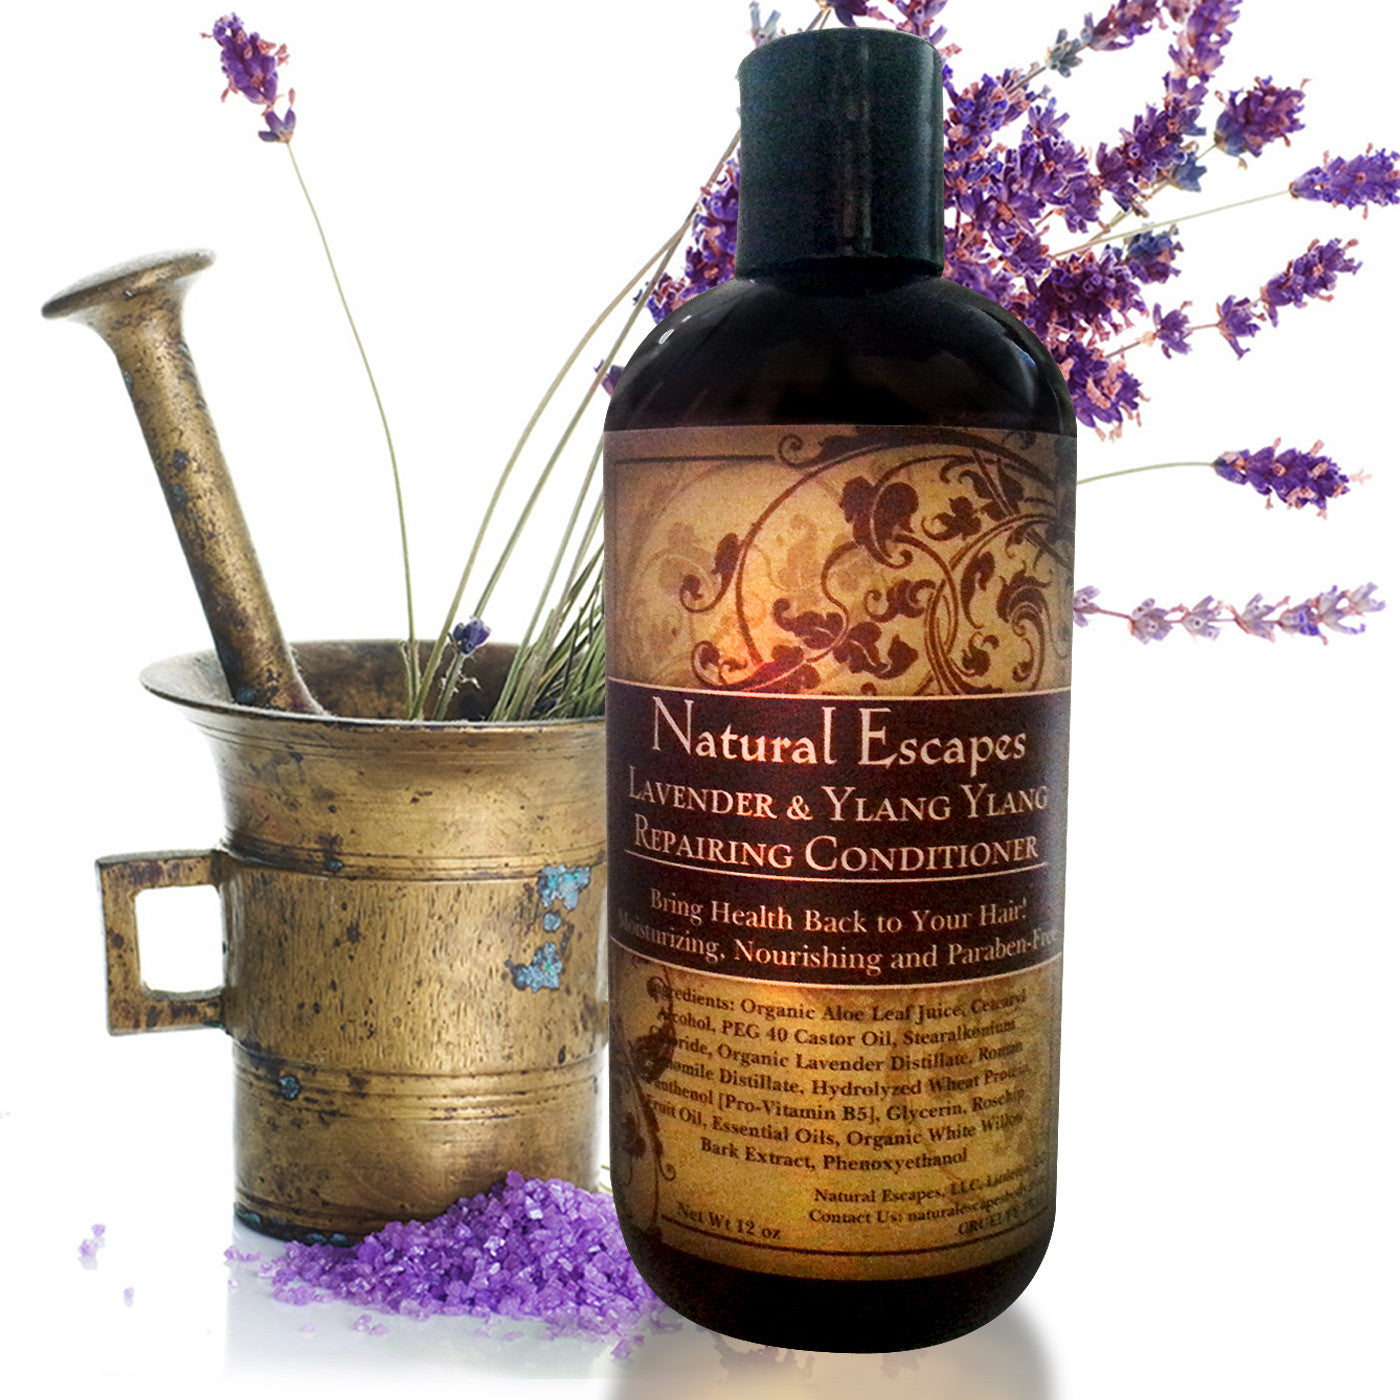 Lavender & Ylang Ylang Repairing Conditioner | Moisturizing Conditioner for Dry Hair, Color-Treated Hair, Hair Growth & More